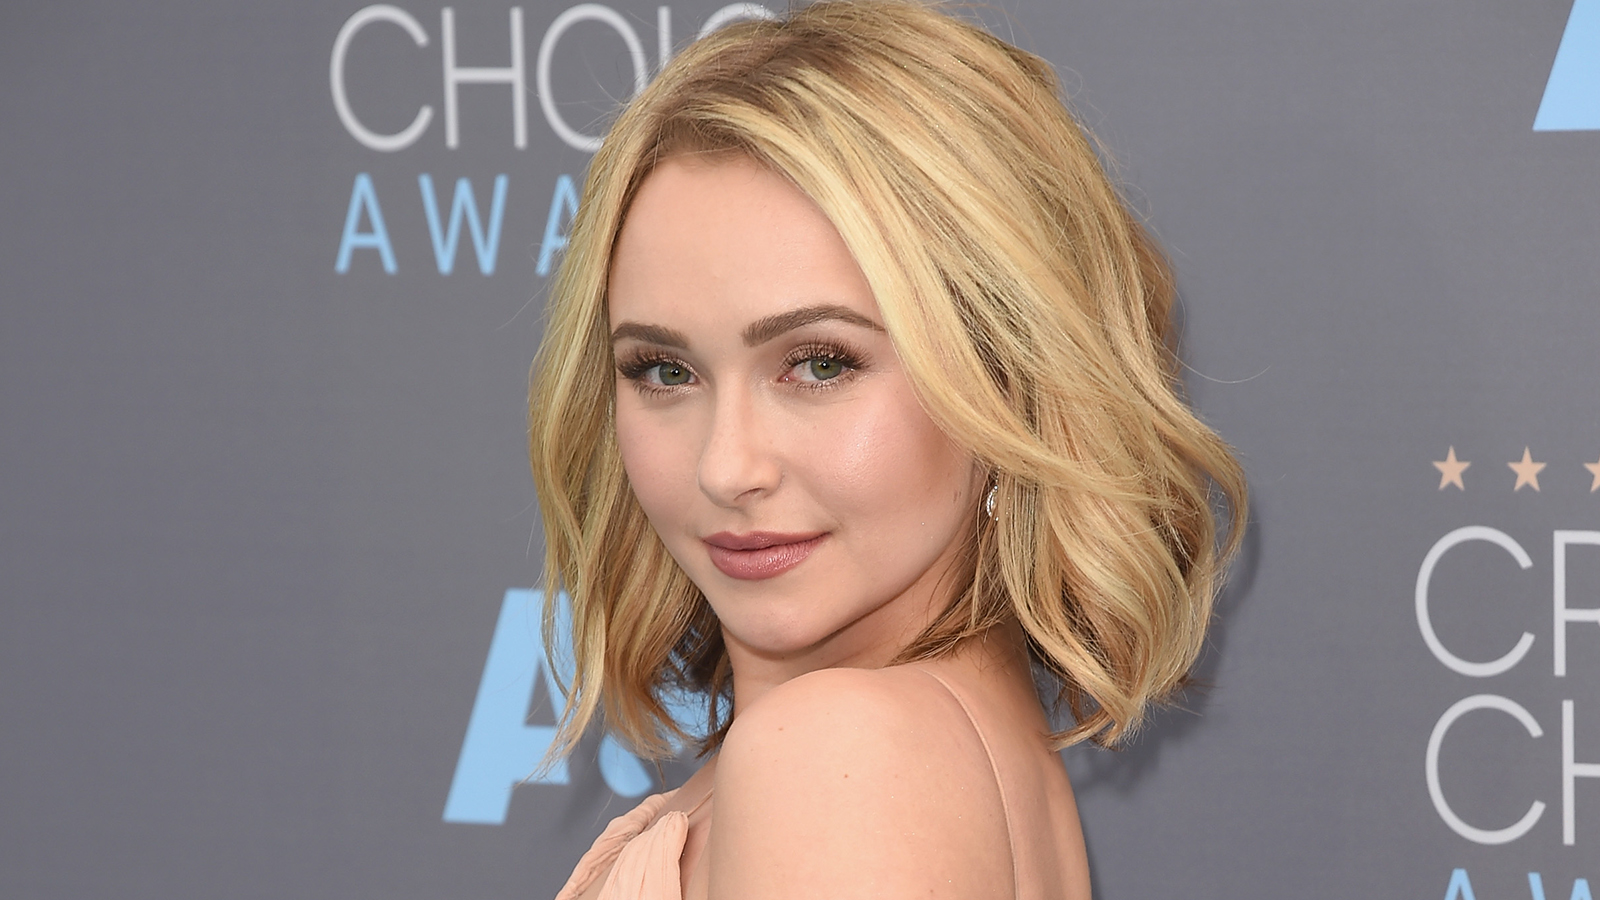 Hayden Panettiere's Relationship with Brian Hickerson Is More Than Just a 'Dalliance'